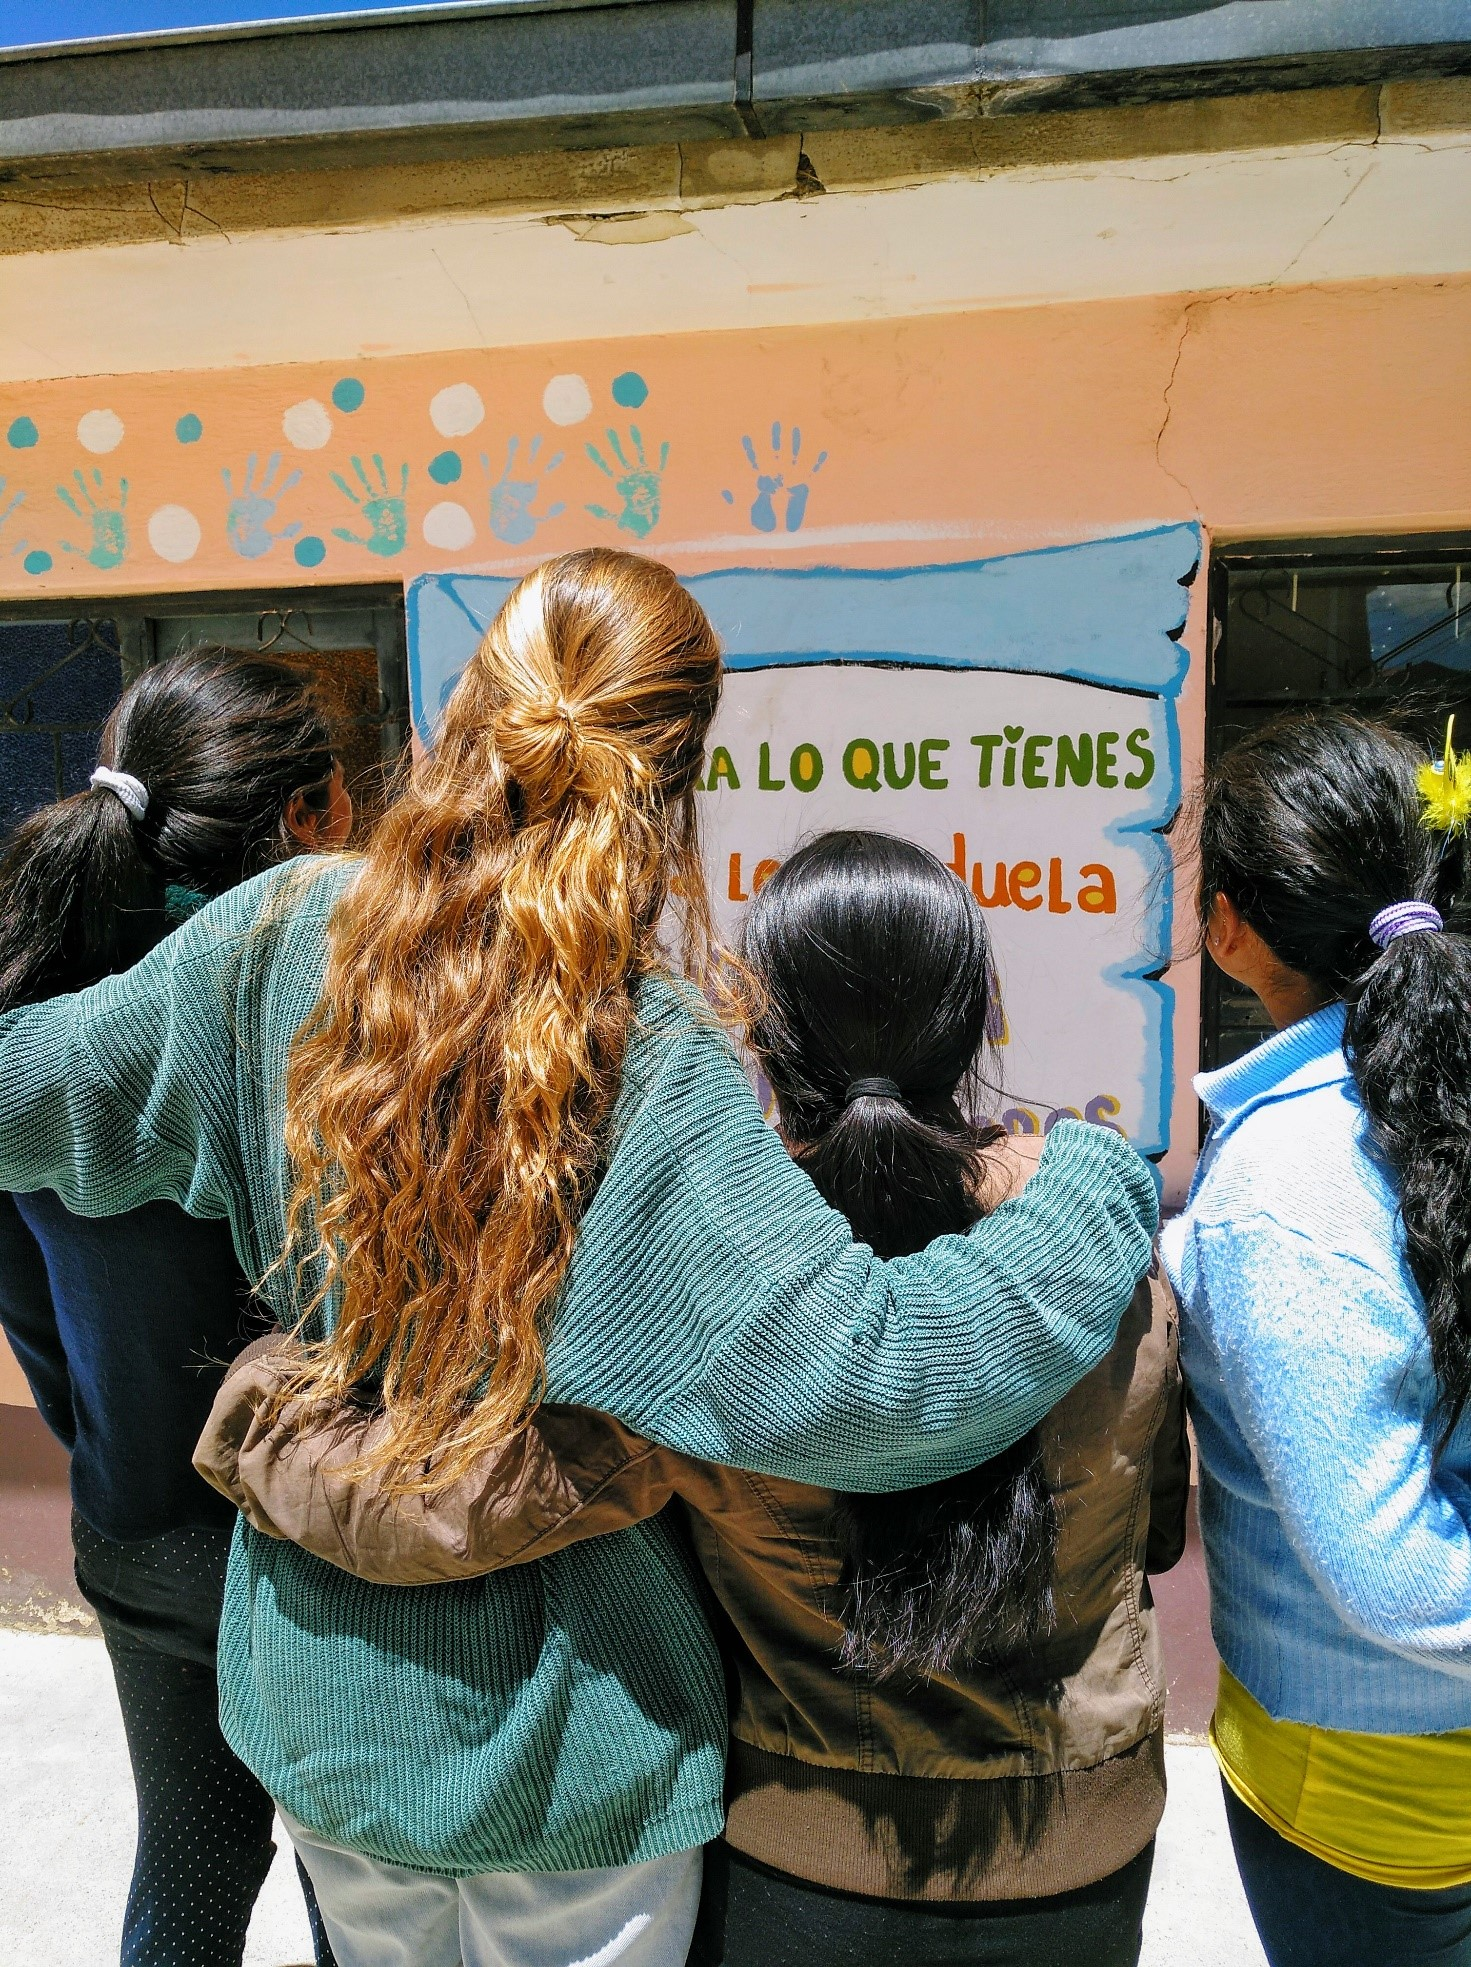 Image of Celia in Bolivia standing with her back to the camera and her arms draped across the shoulders of two women. There is a fourth woman in the photo to the right of Celia.